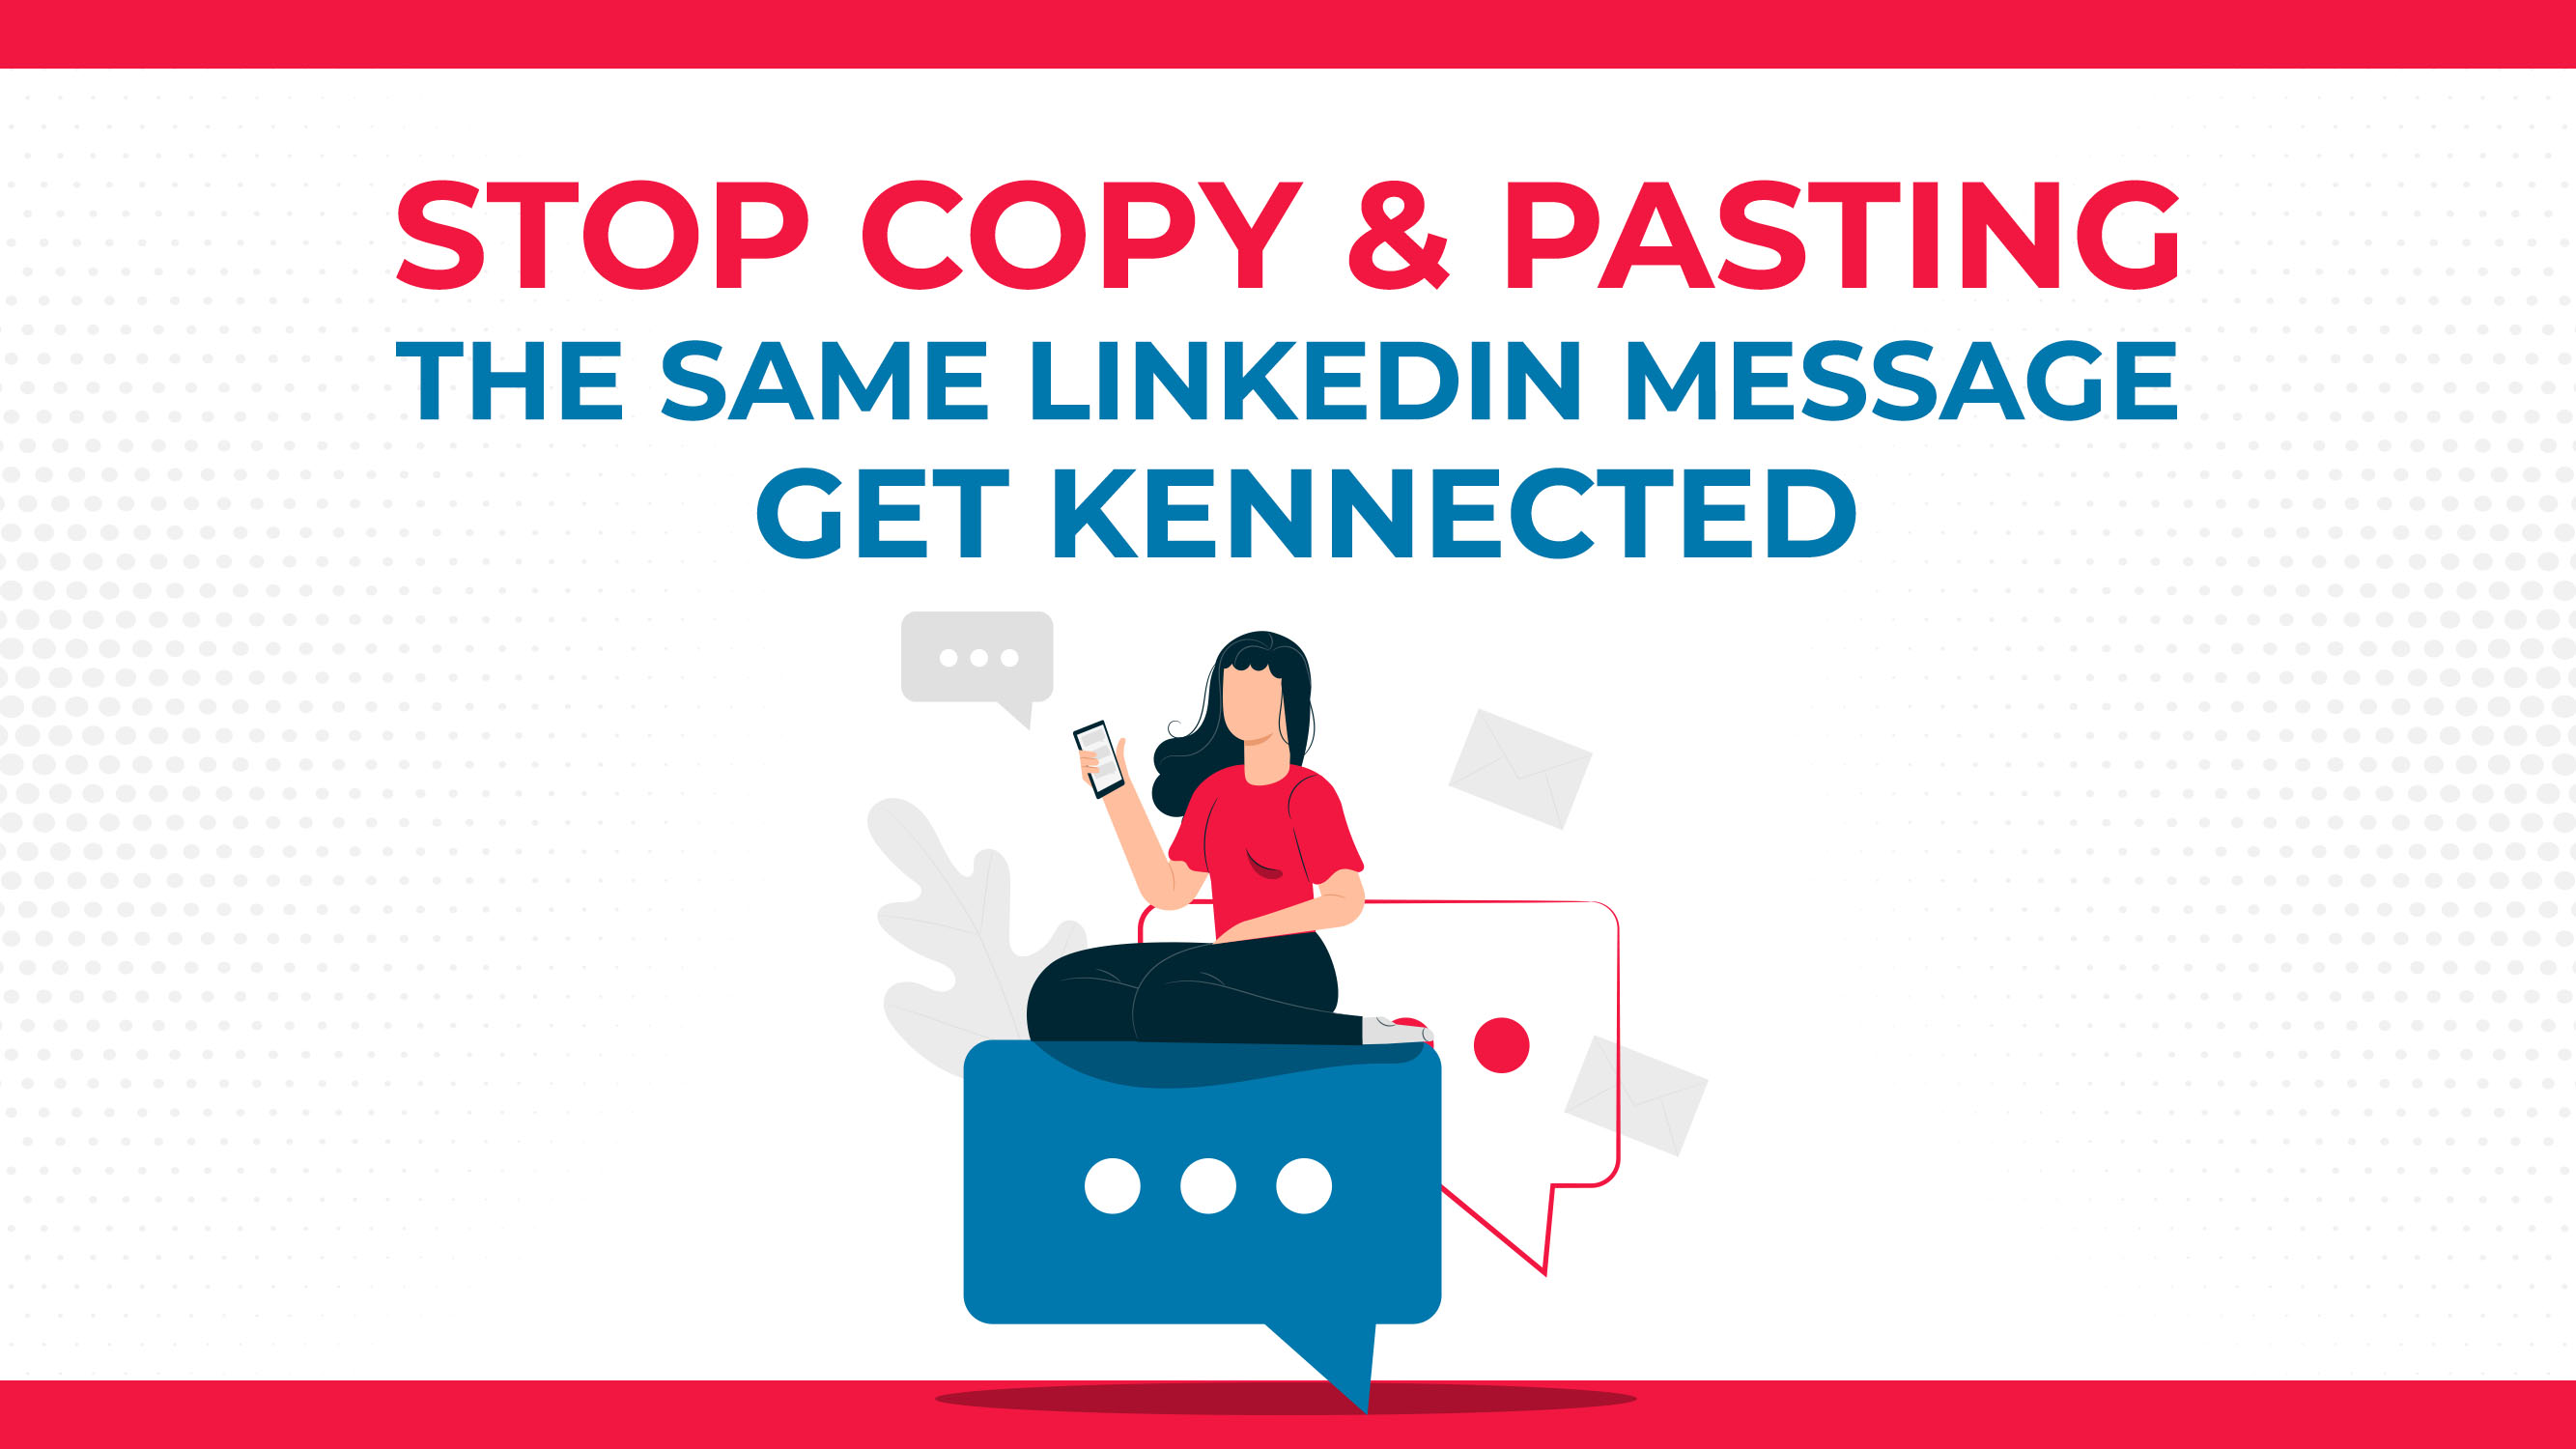 Stop Copy & Pasting The Same LinkedIn Message | Get Kennected